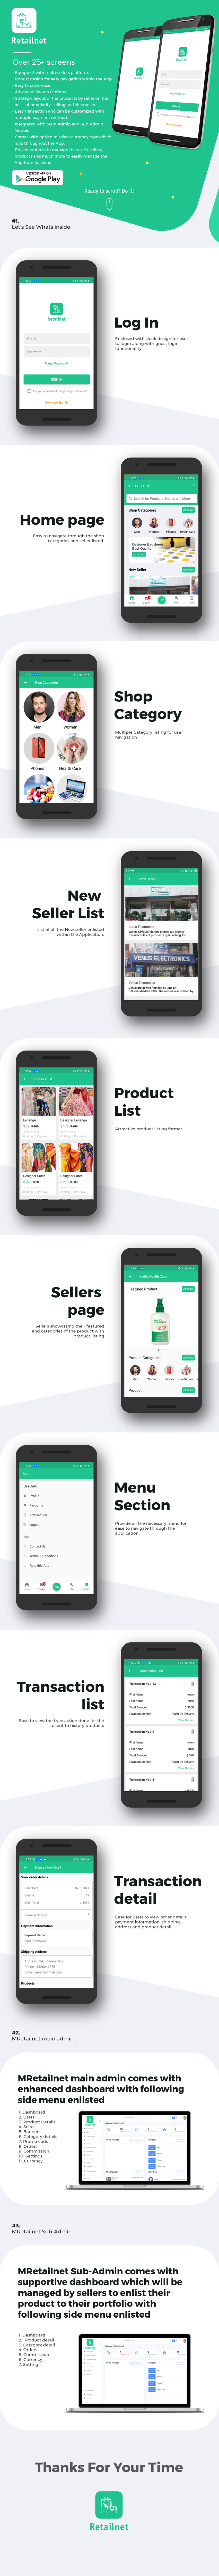 Market place delivery android application